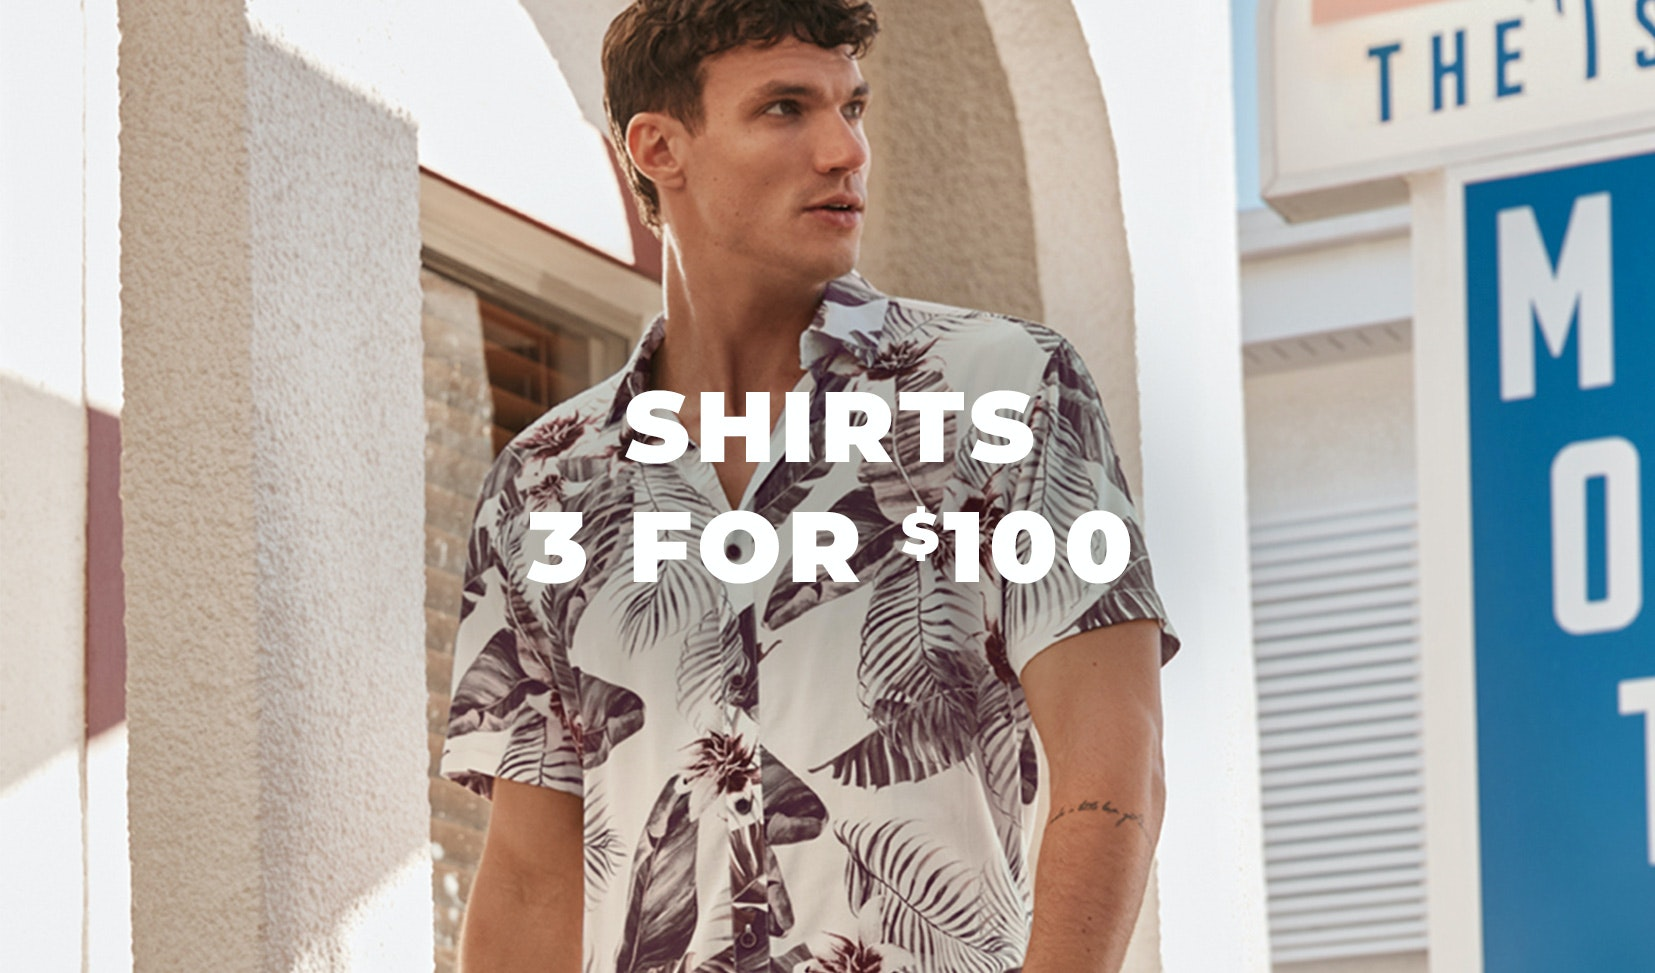 3 for 100 shirts